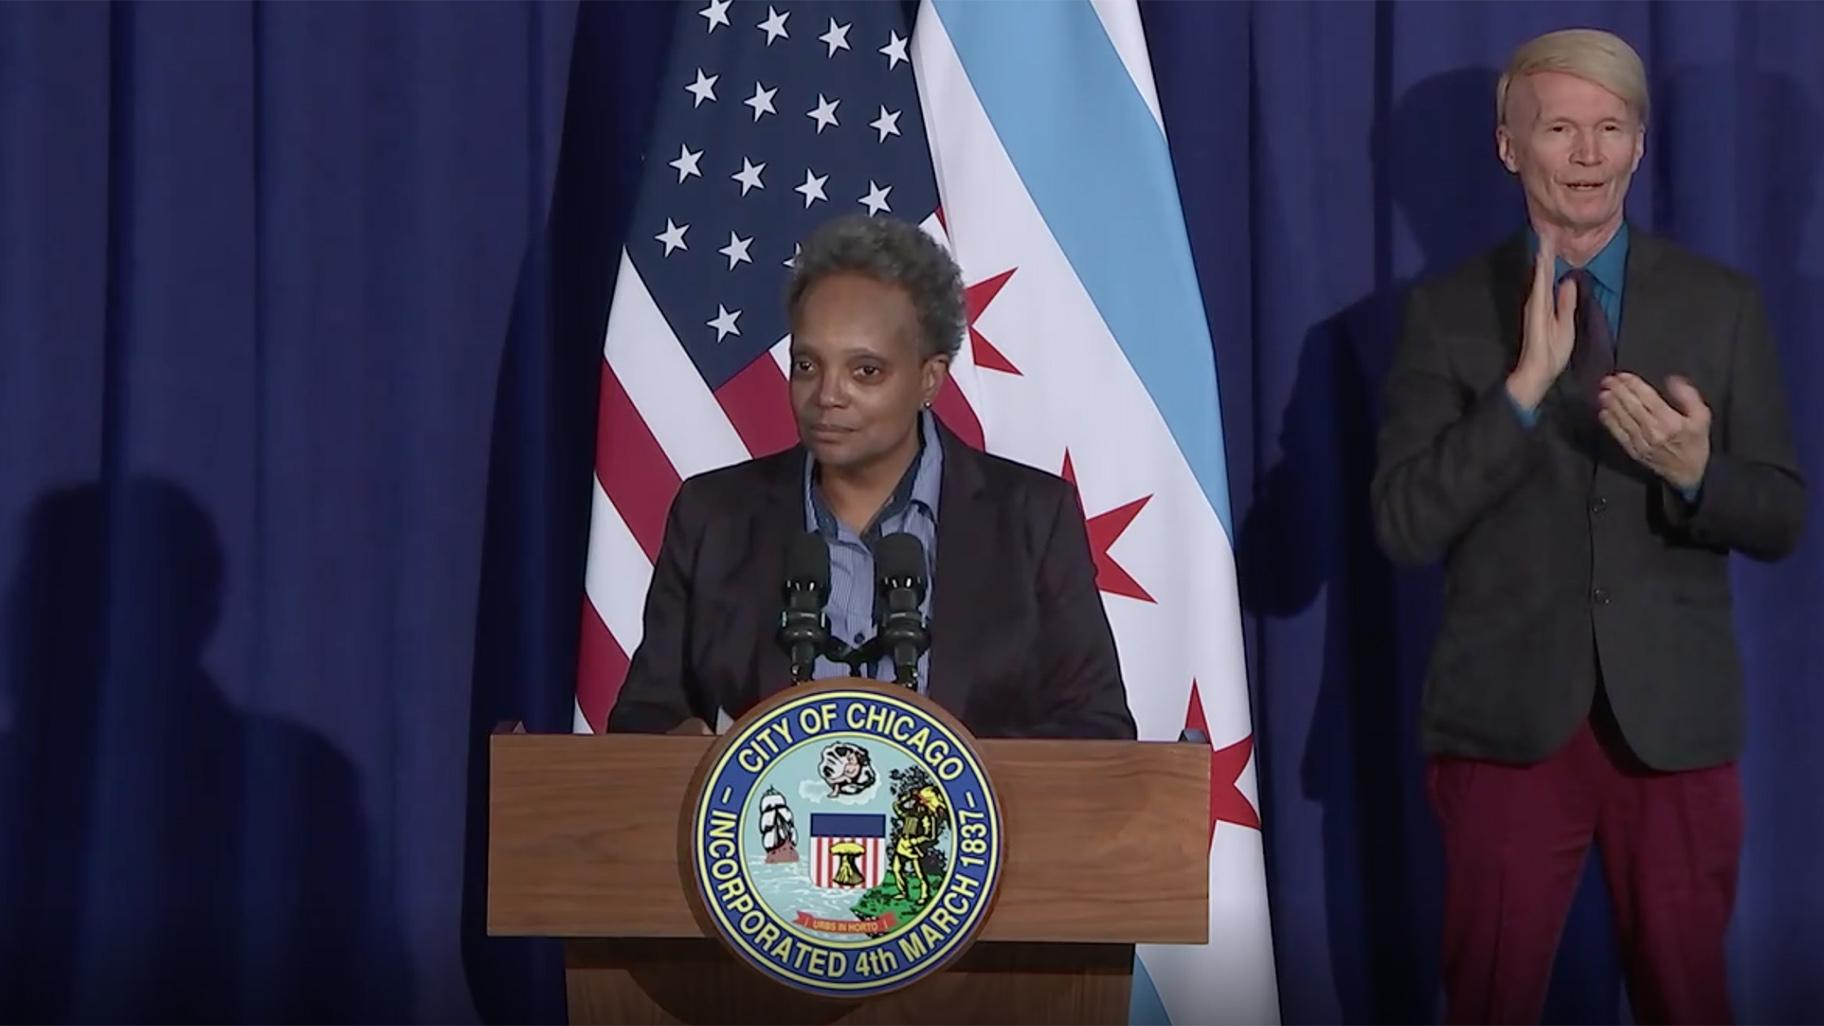 Lightfoot Celebrates Win By Biden Harris Has A Nice Ring To It Doesn T It Chicago News Wttw